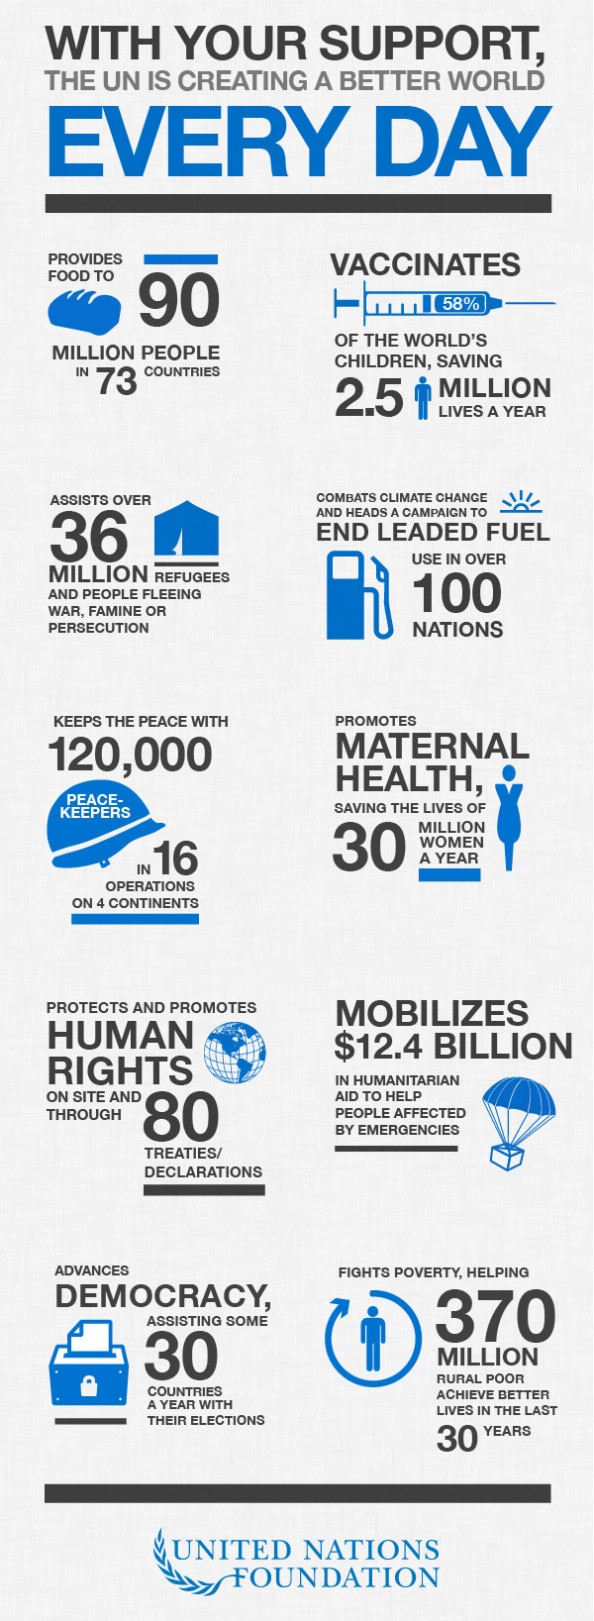 UN Is Creating Better World Everyday Infographic